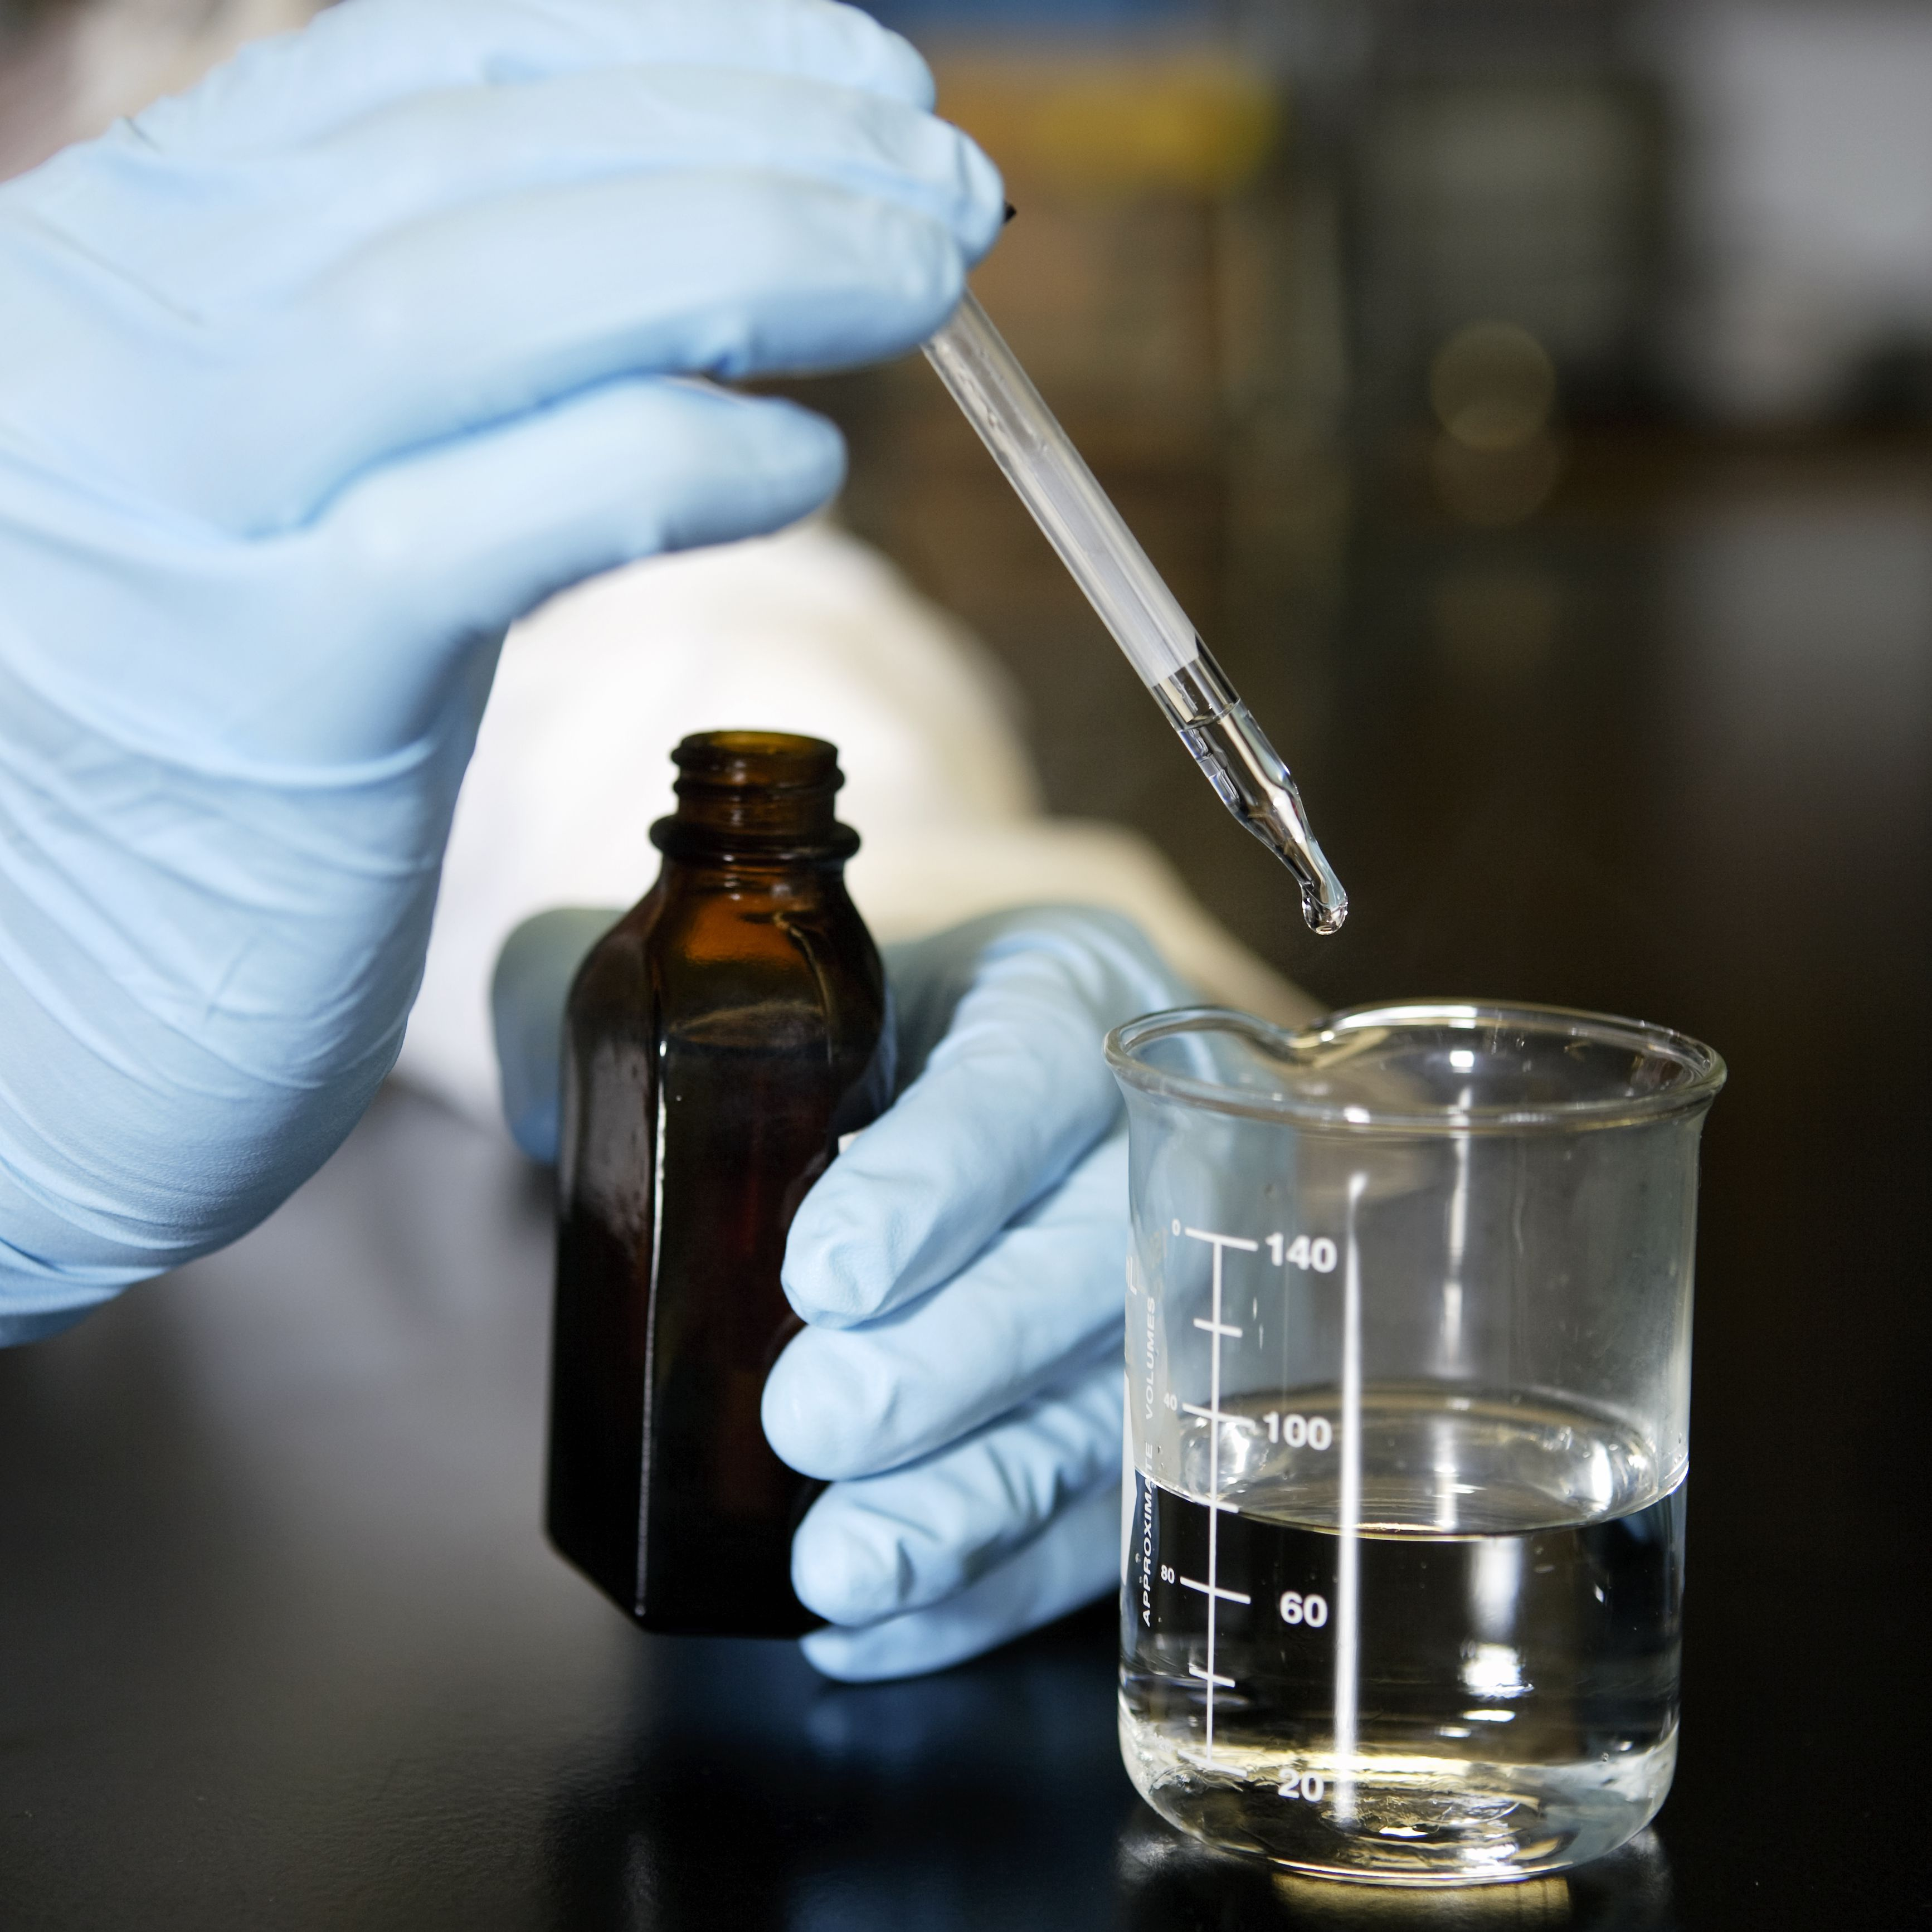 Do You Add Sulfuric Acid to Water or Vice Versa?